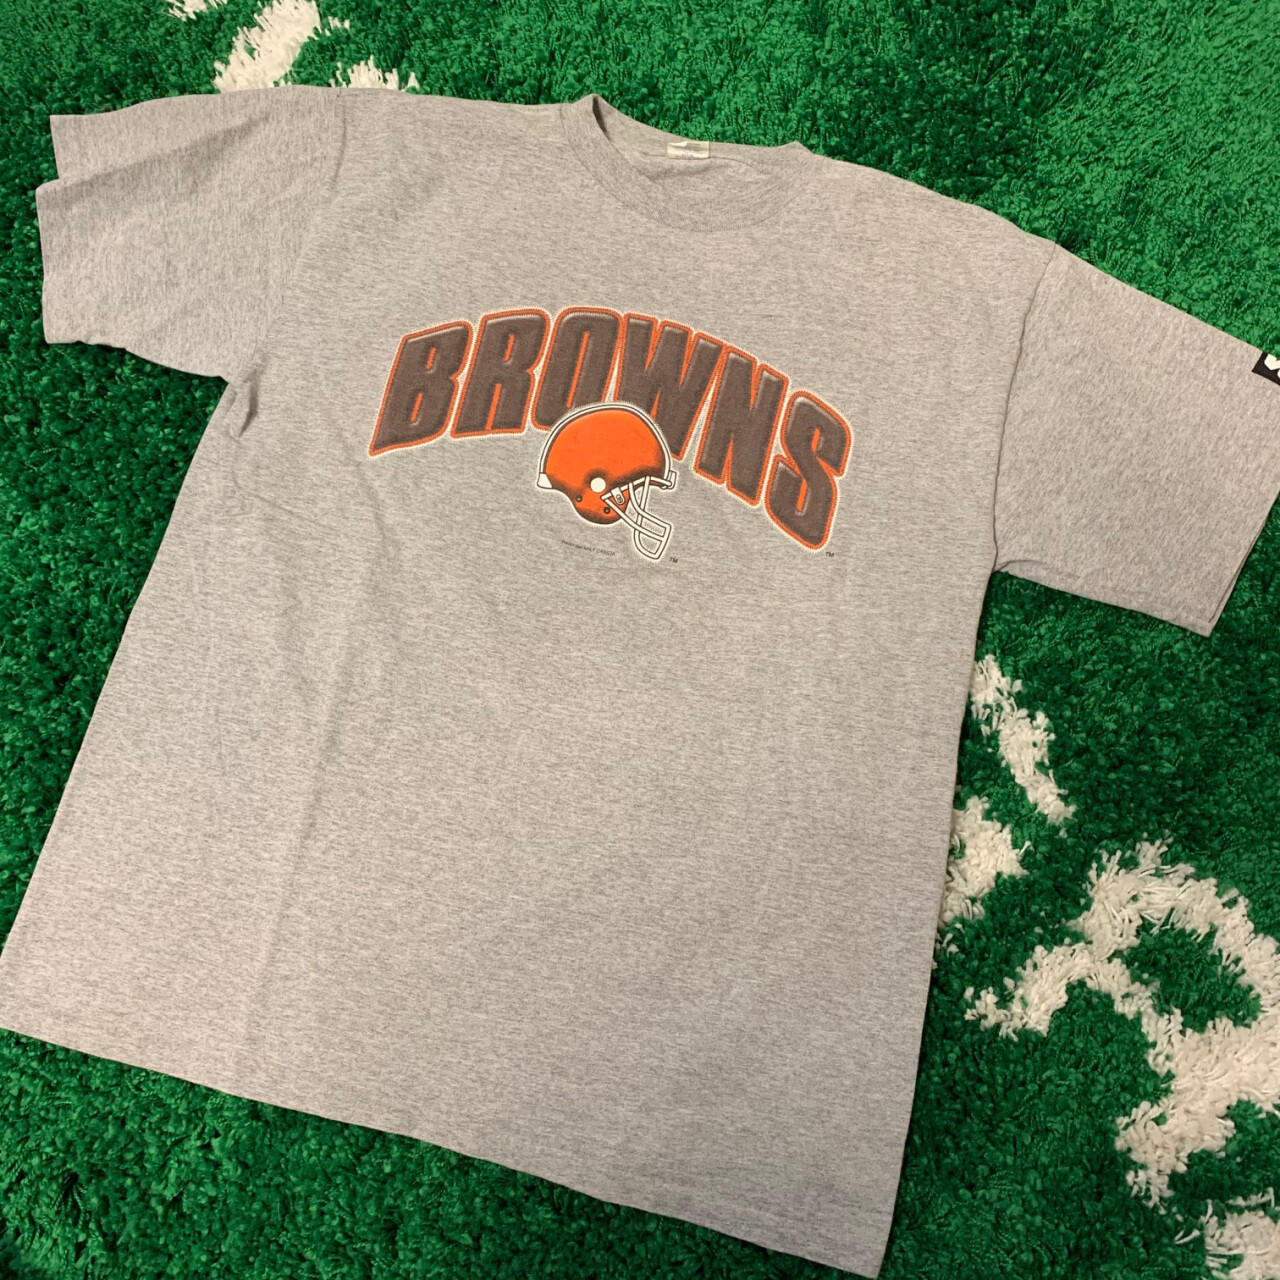 Cleveland Browns Tee 90's Size Large